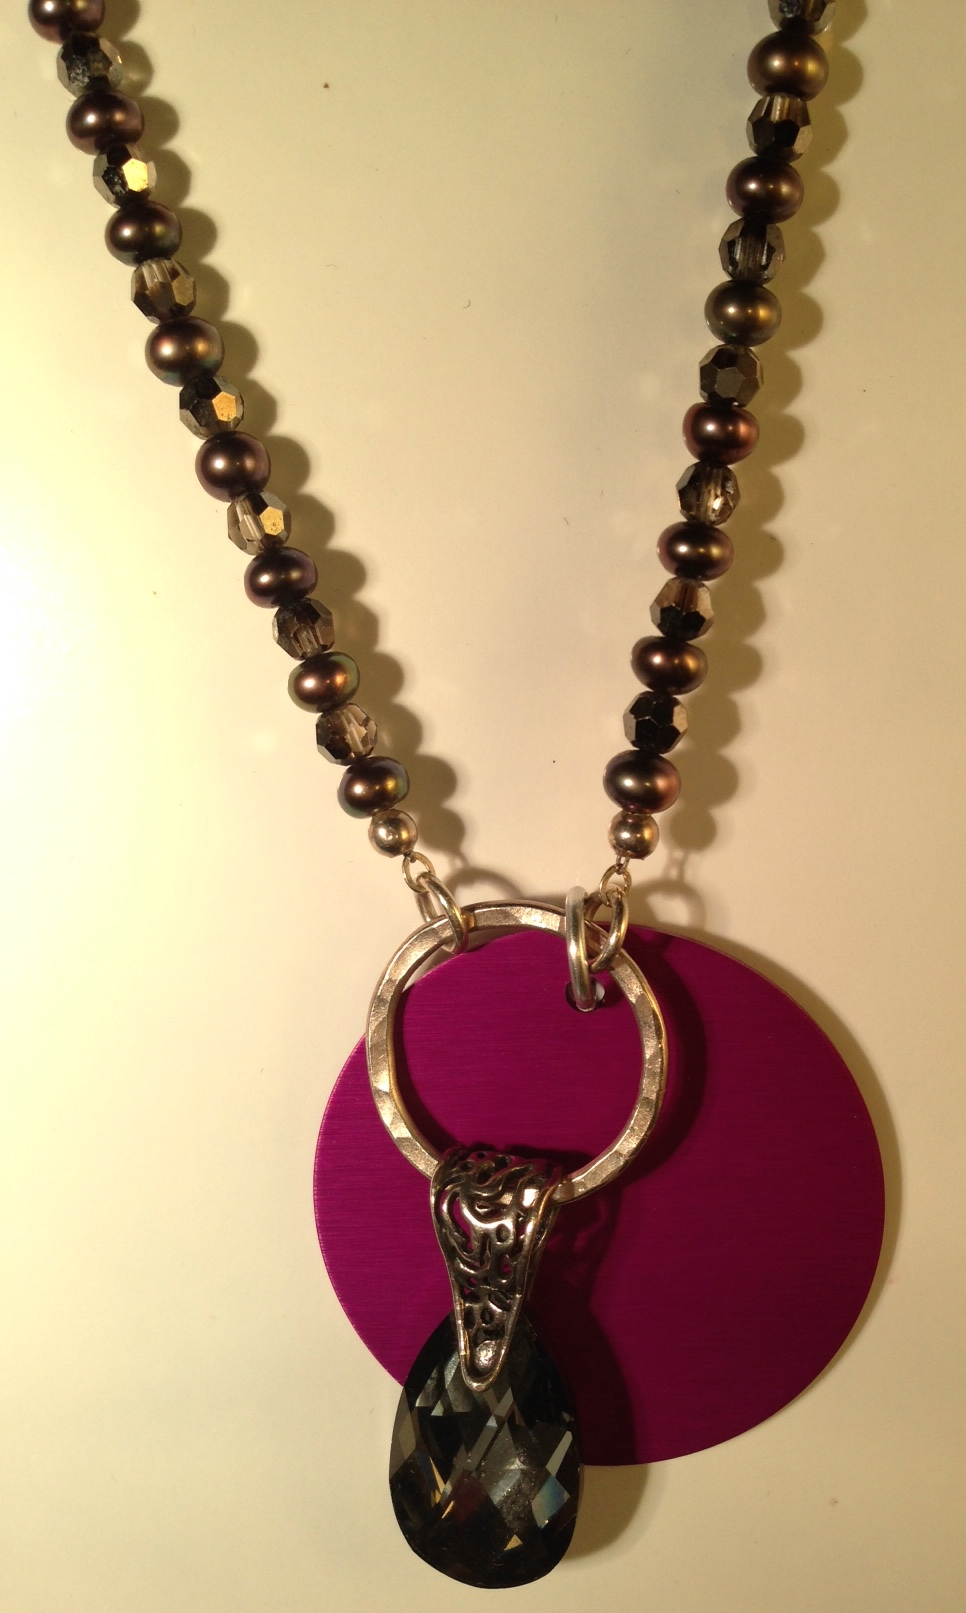 Only One Hematite and Pearls